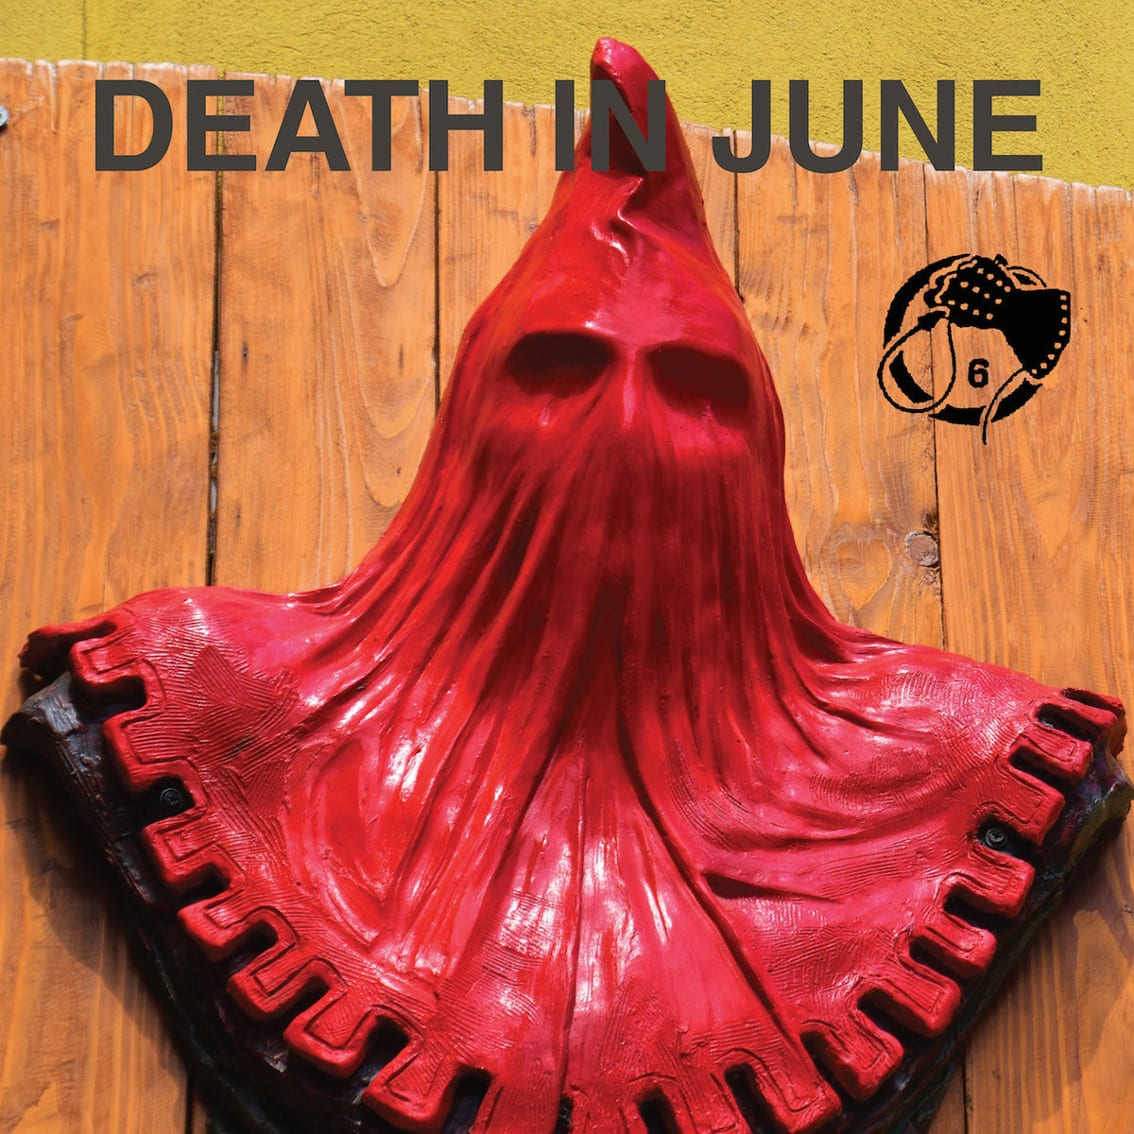 Death In June to release 1st album in 8 years:'Essence!' - also available on vinyl